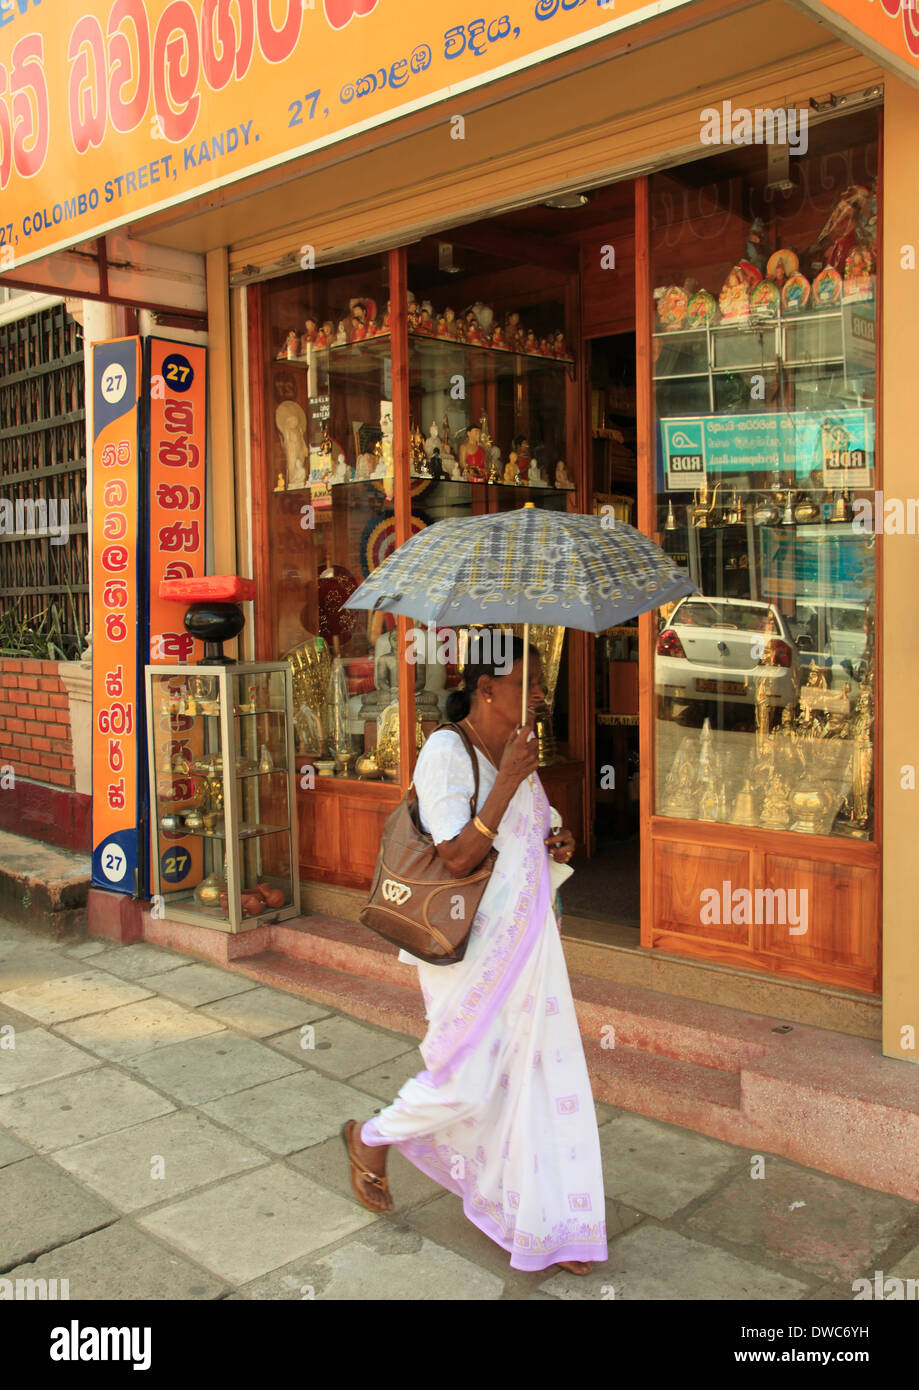 Sri Lanka; Kandy; street scene, shop, people, - Stock Image